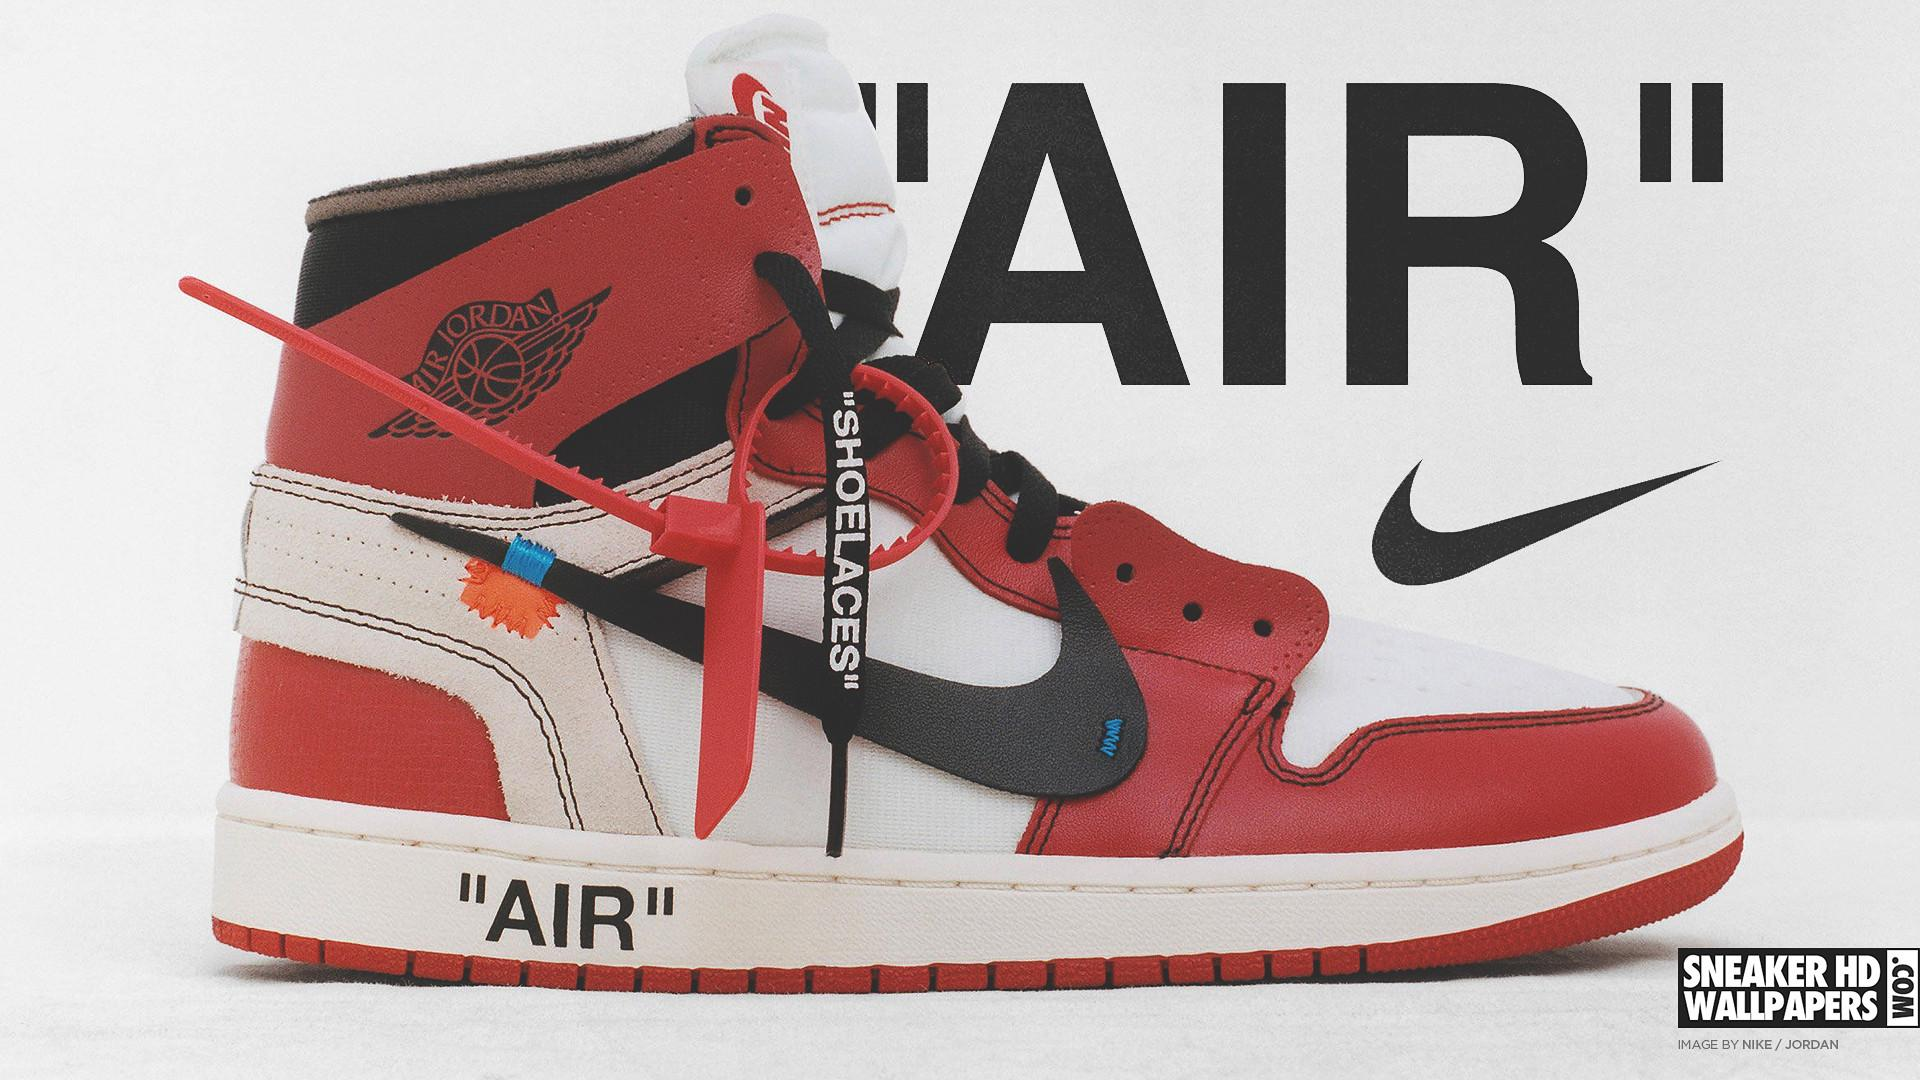 Off White Air Jordan Wallpapers Wallpaper Cave